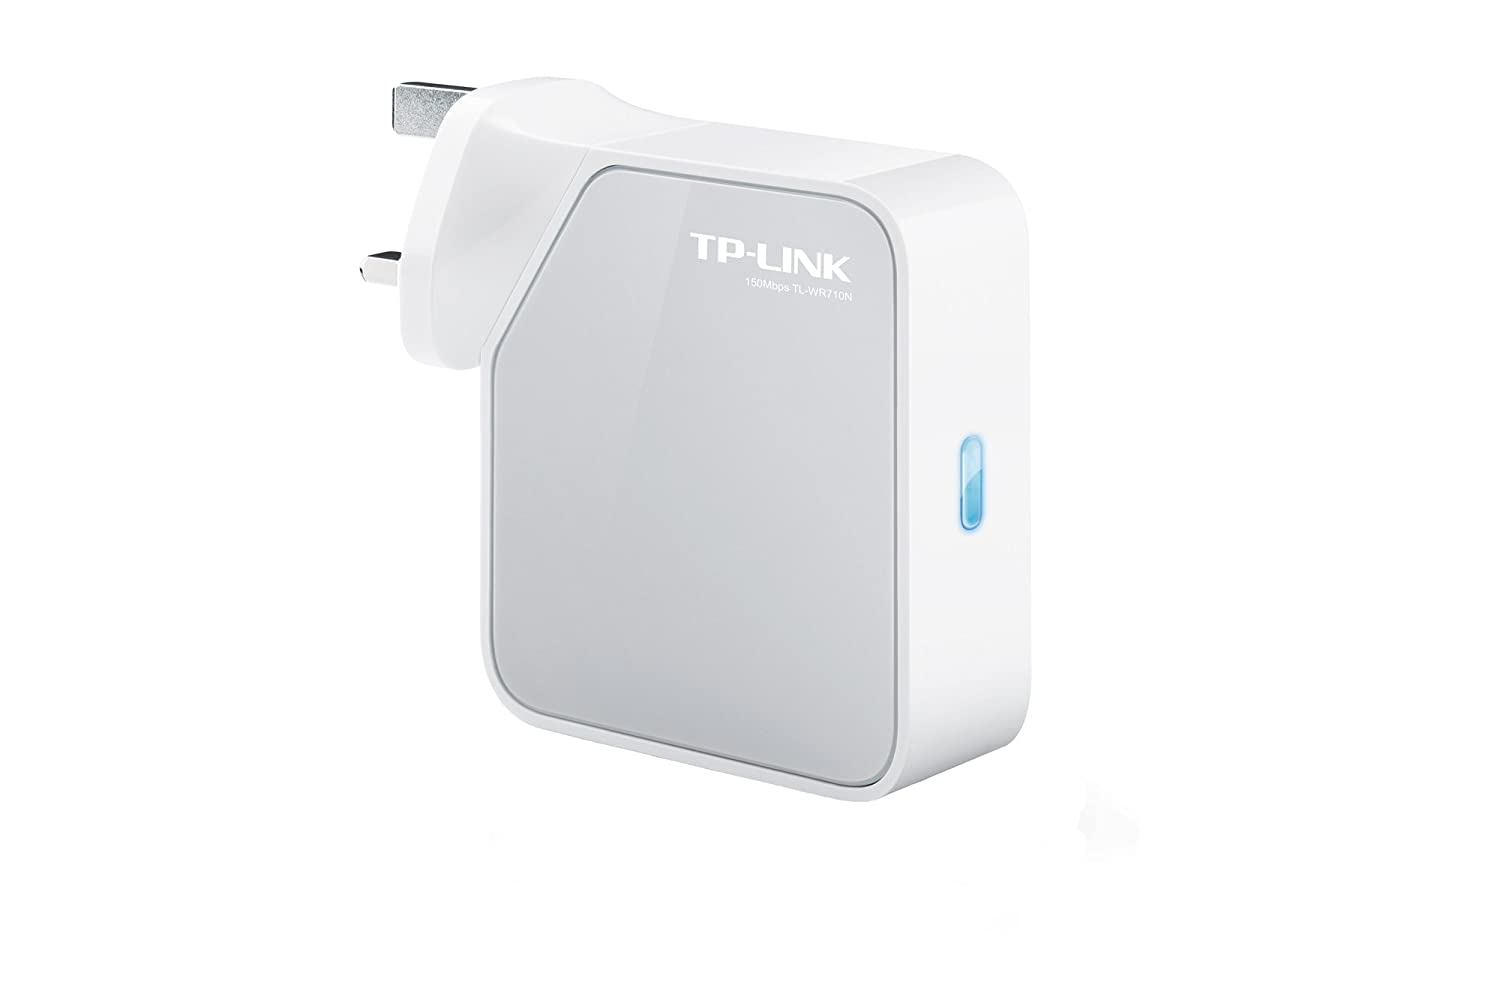 TP-Link 150 Mbps Wi-Fi Travel Router (Support Router Mode/Hotspot  Mode/Range Extender Mode/Client Mode/Access Point Mode, Built-In Power  Adapter, 1